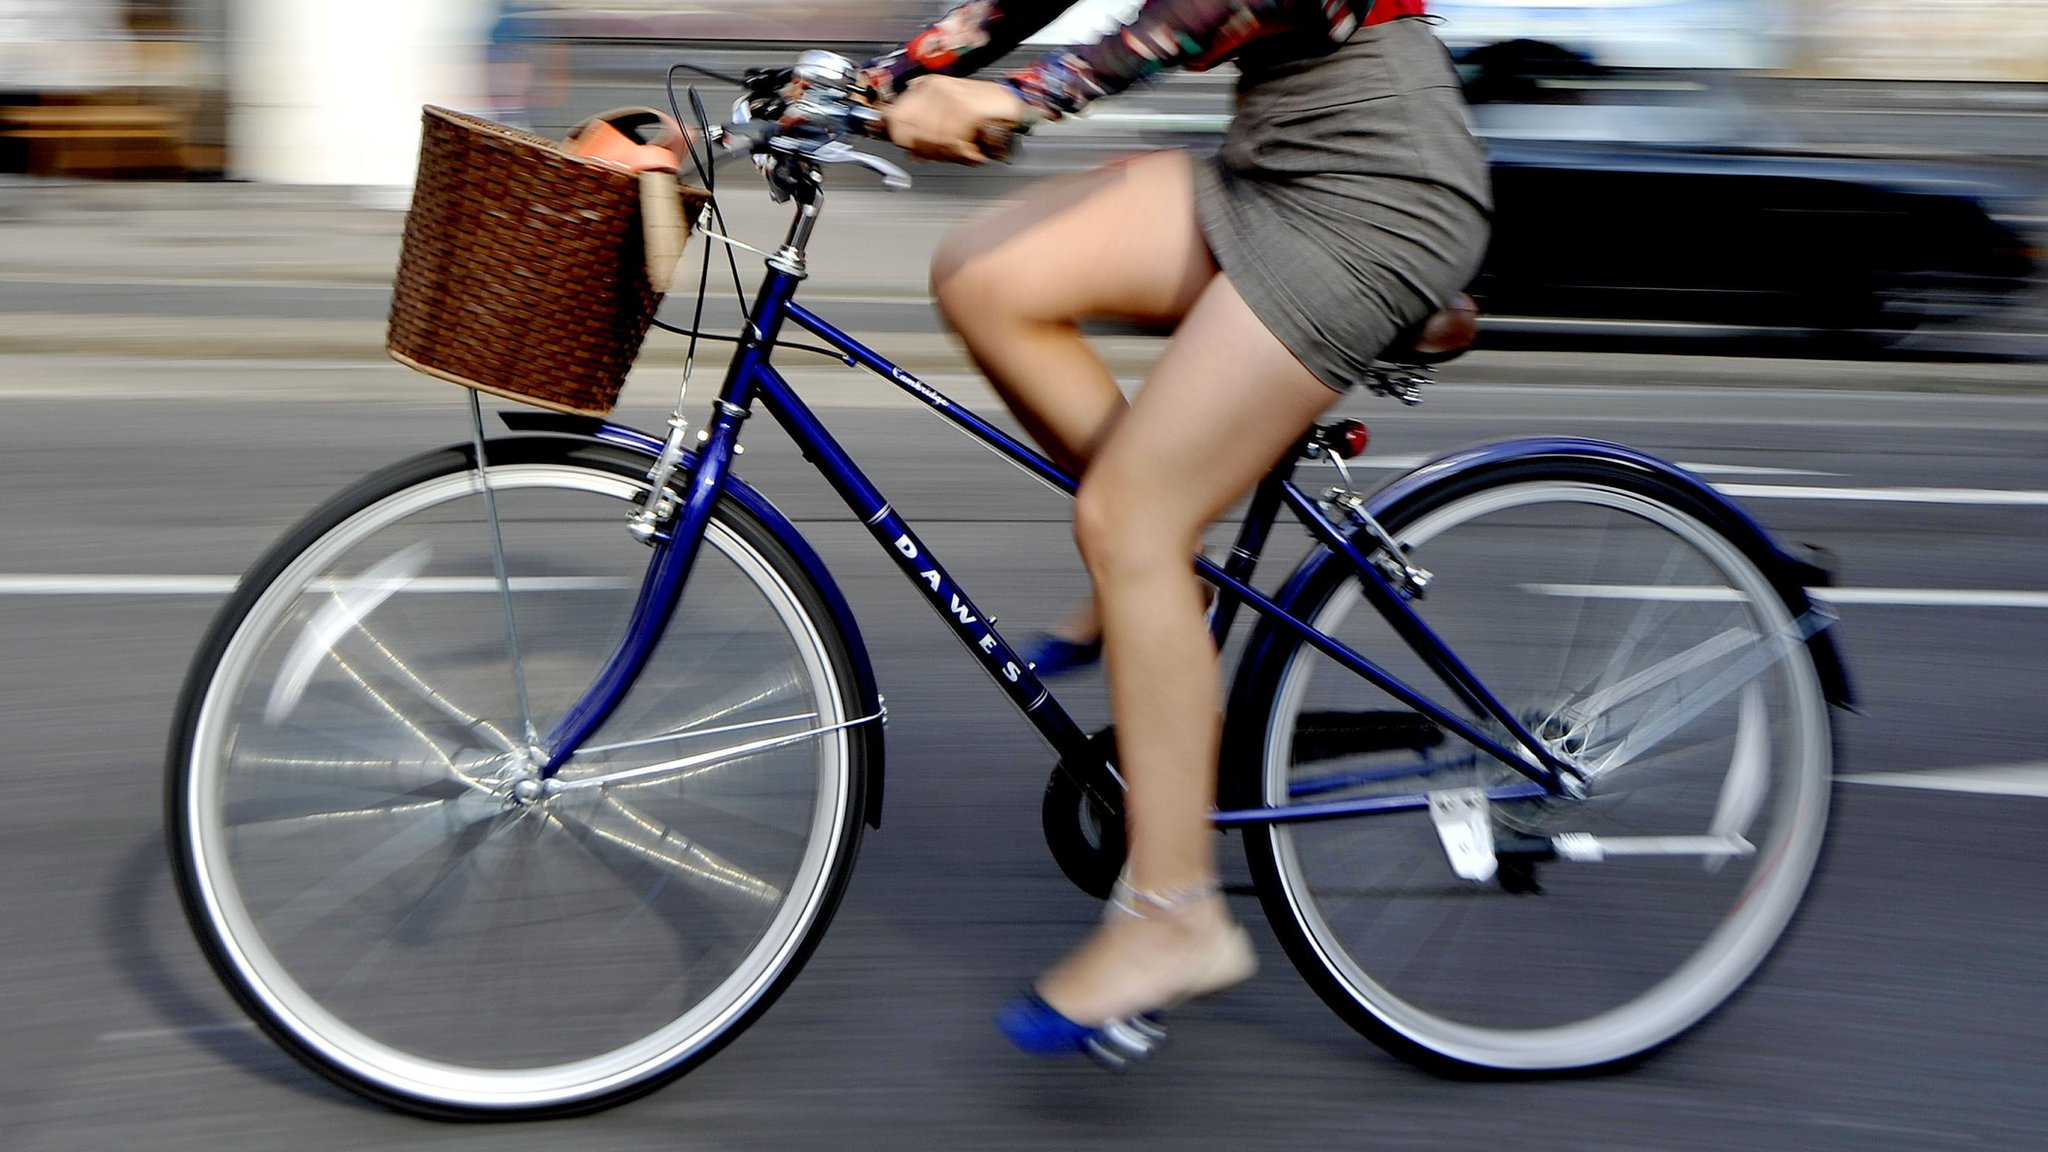 Highway Code may include 'Dutch reach' to keep cyclists safe